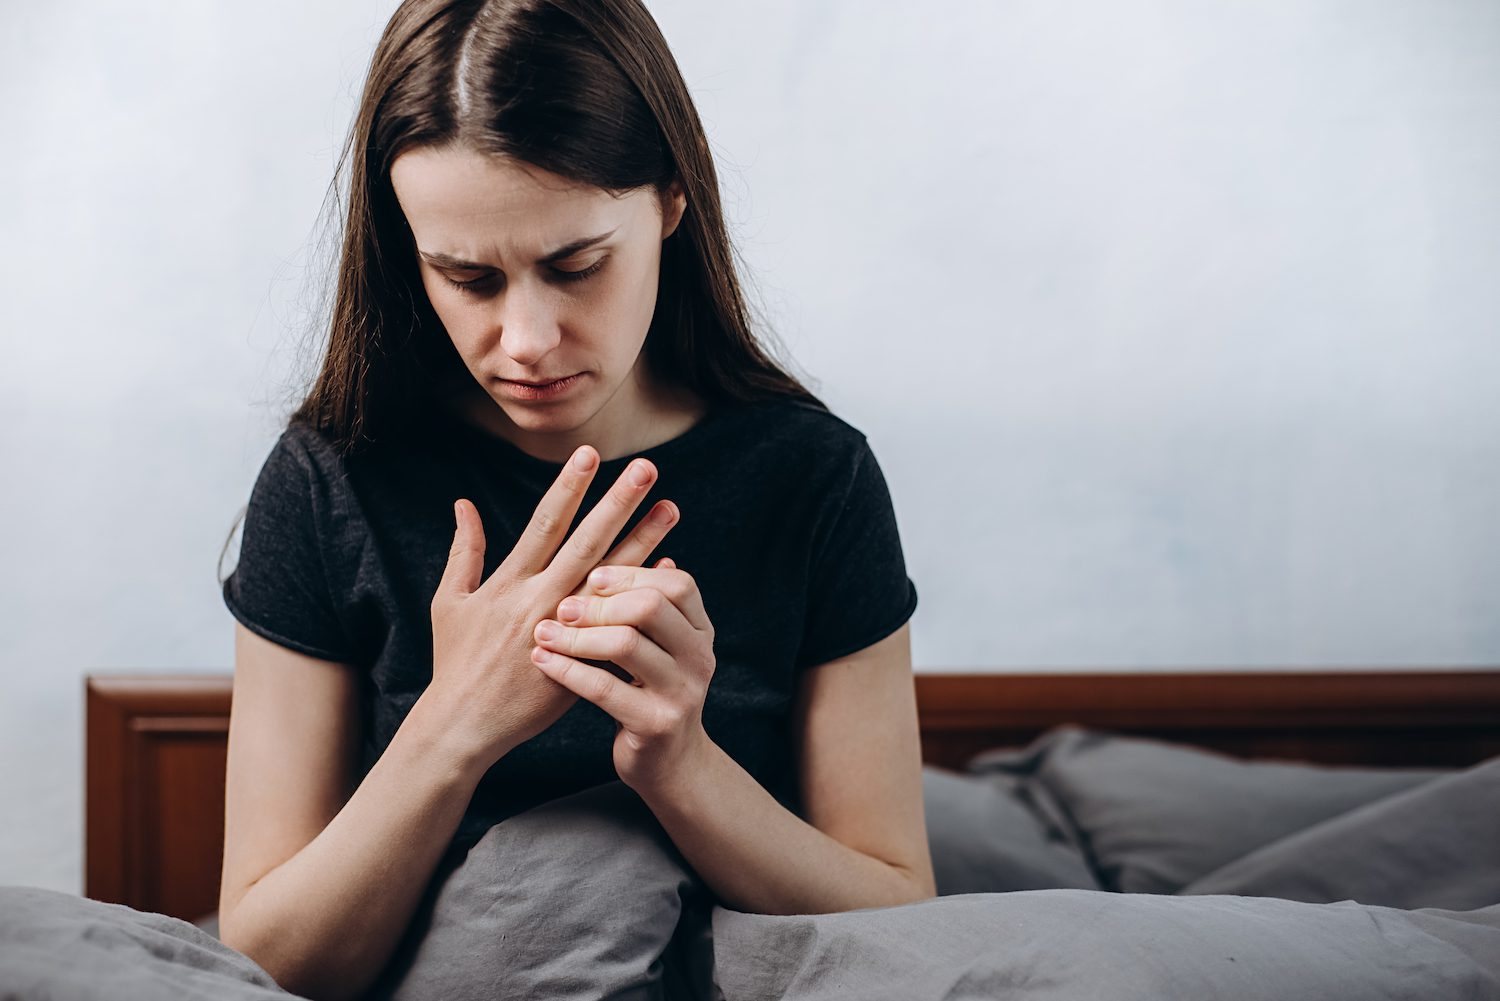 Woman holding numb hand in pain